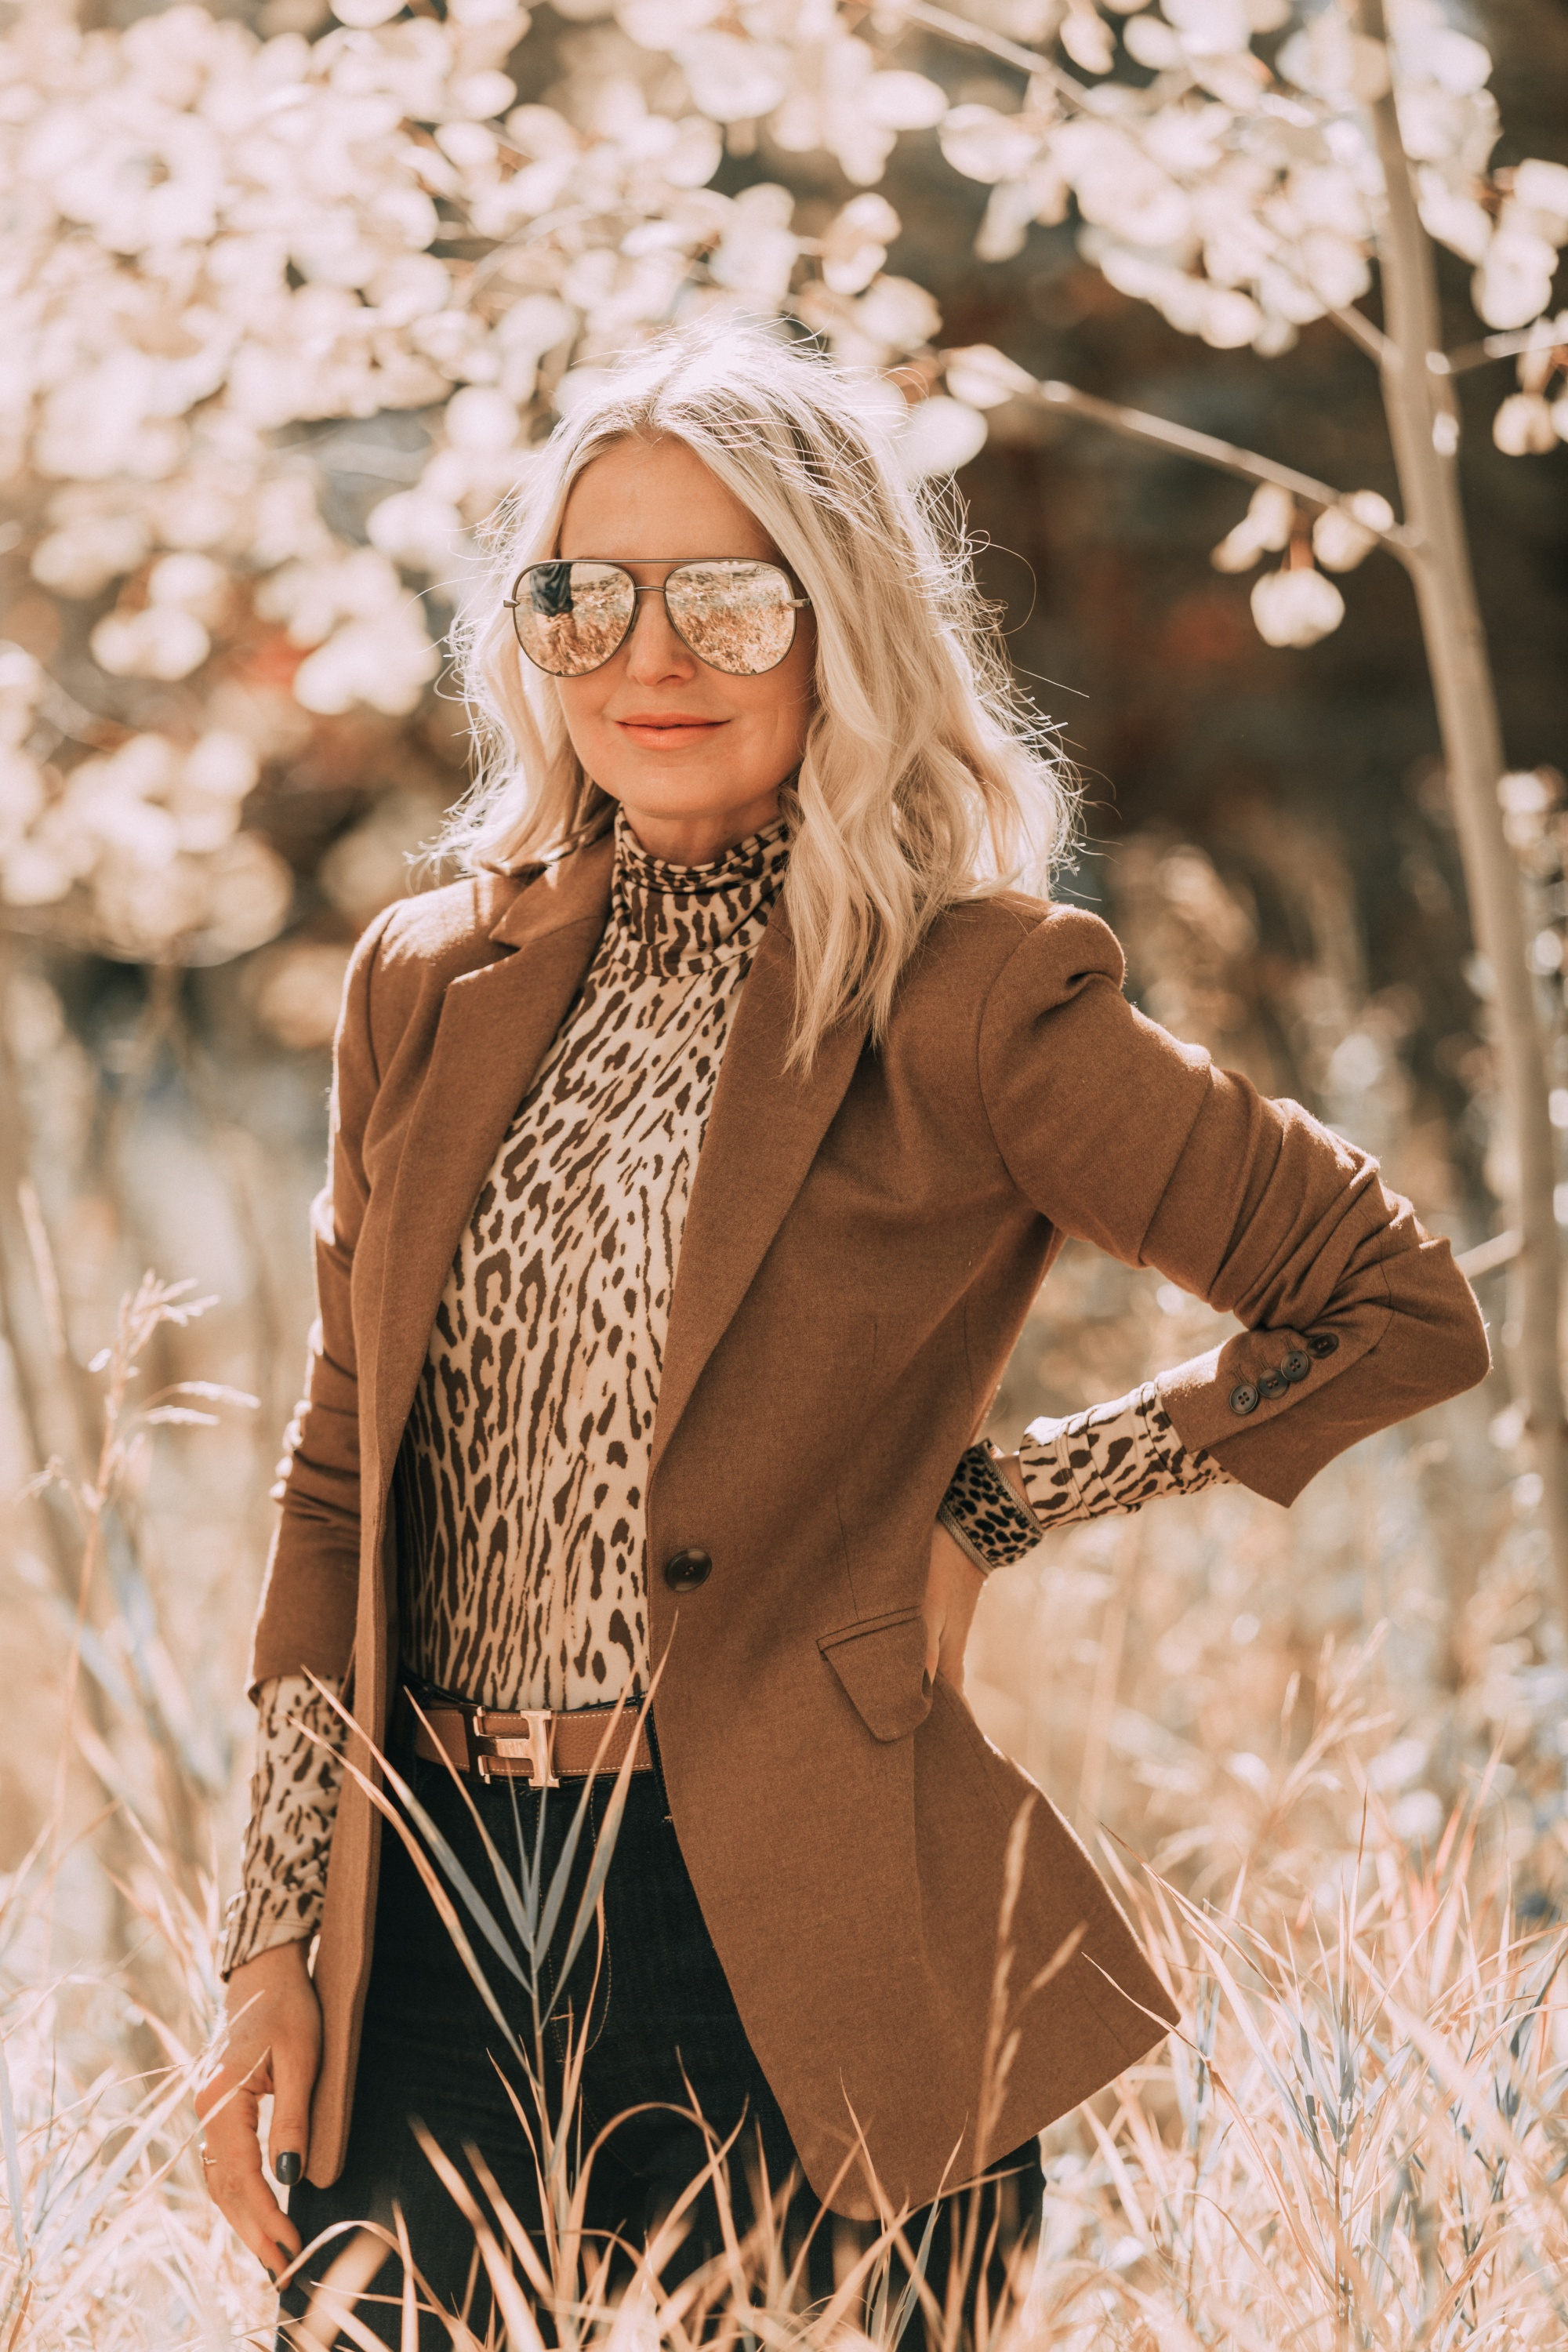 Neutral Fall Outfit, Fashion blogger Erin Busbee of BusbeeStyle.com wearing the camel brown Nordstrom signature blazer with a Zimmerman leopard print turtleneck, rag & bone skinny jeans, Sam Edelman knee high suede boots, and hermes belt in Telluride, CO